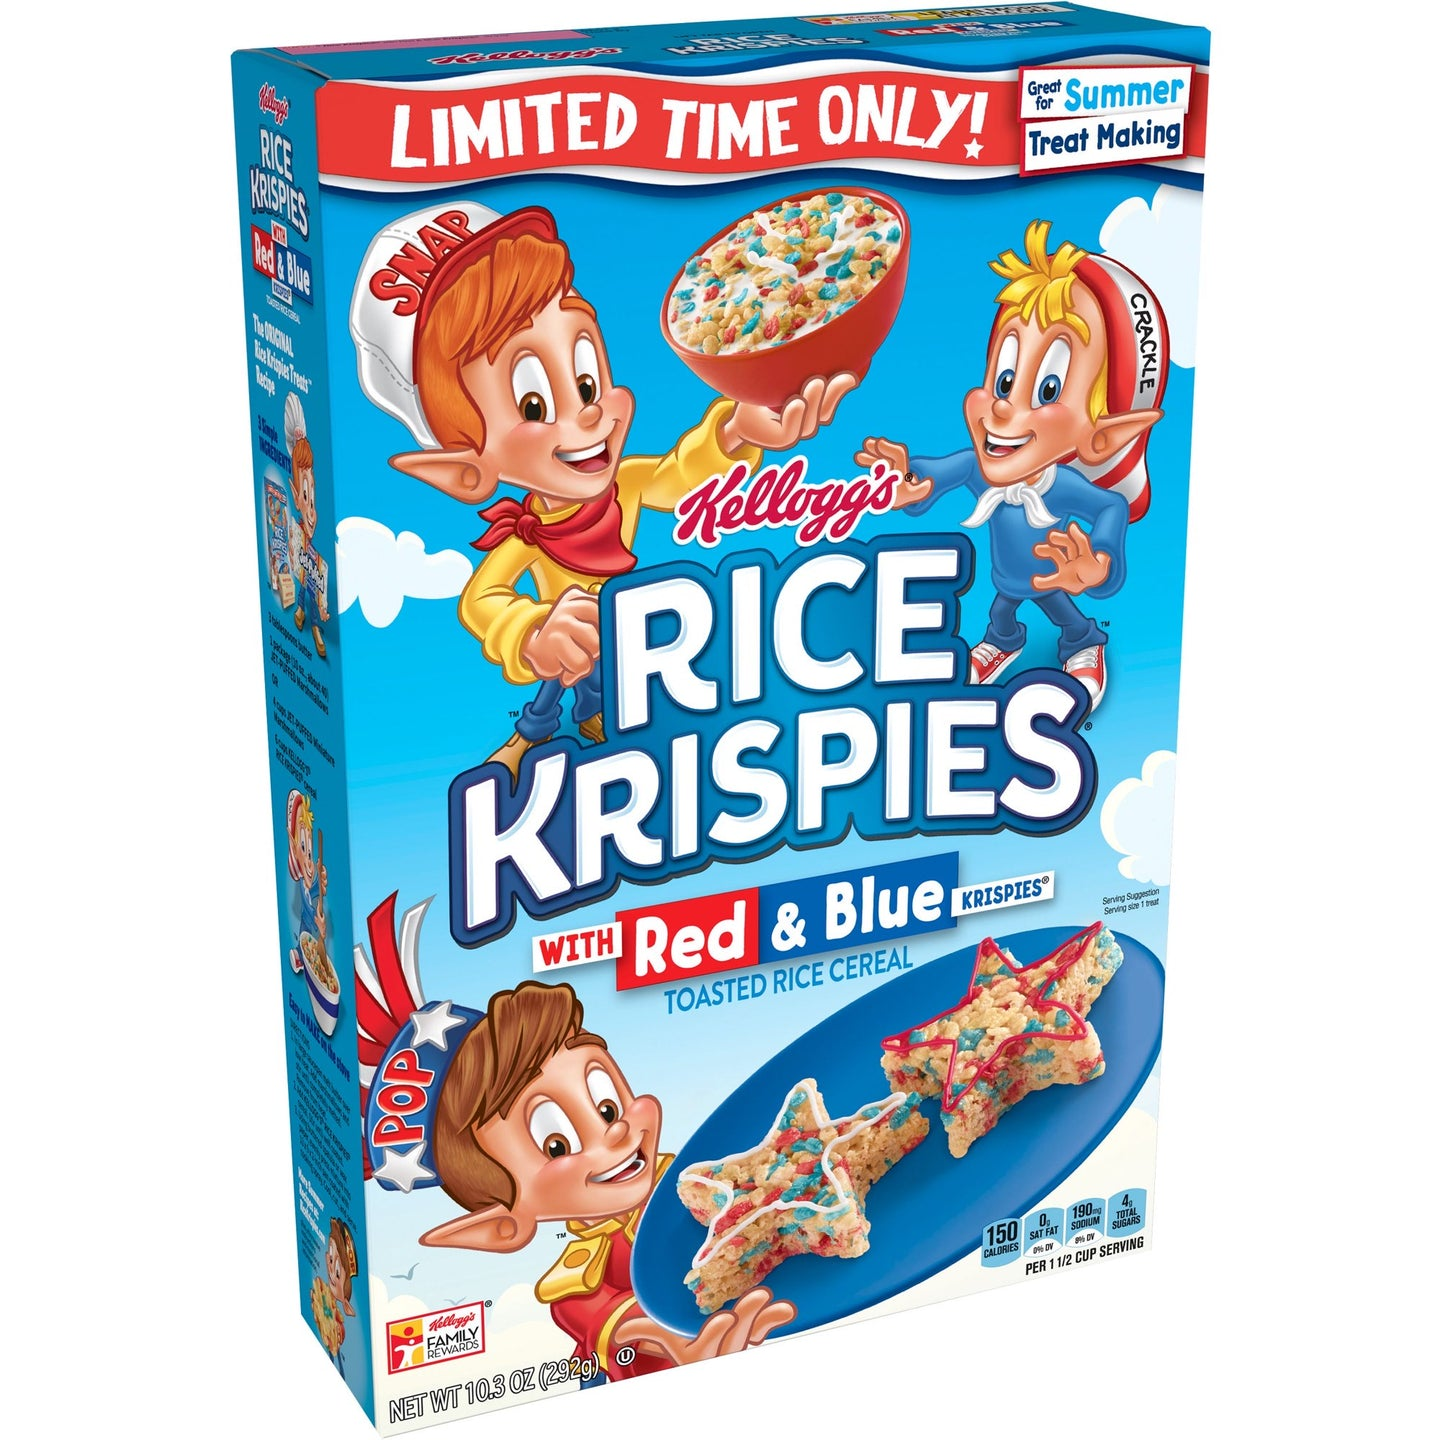 Kellogg's Rice Krispies with Red & Blue Cereal 10.3oz